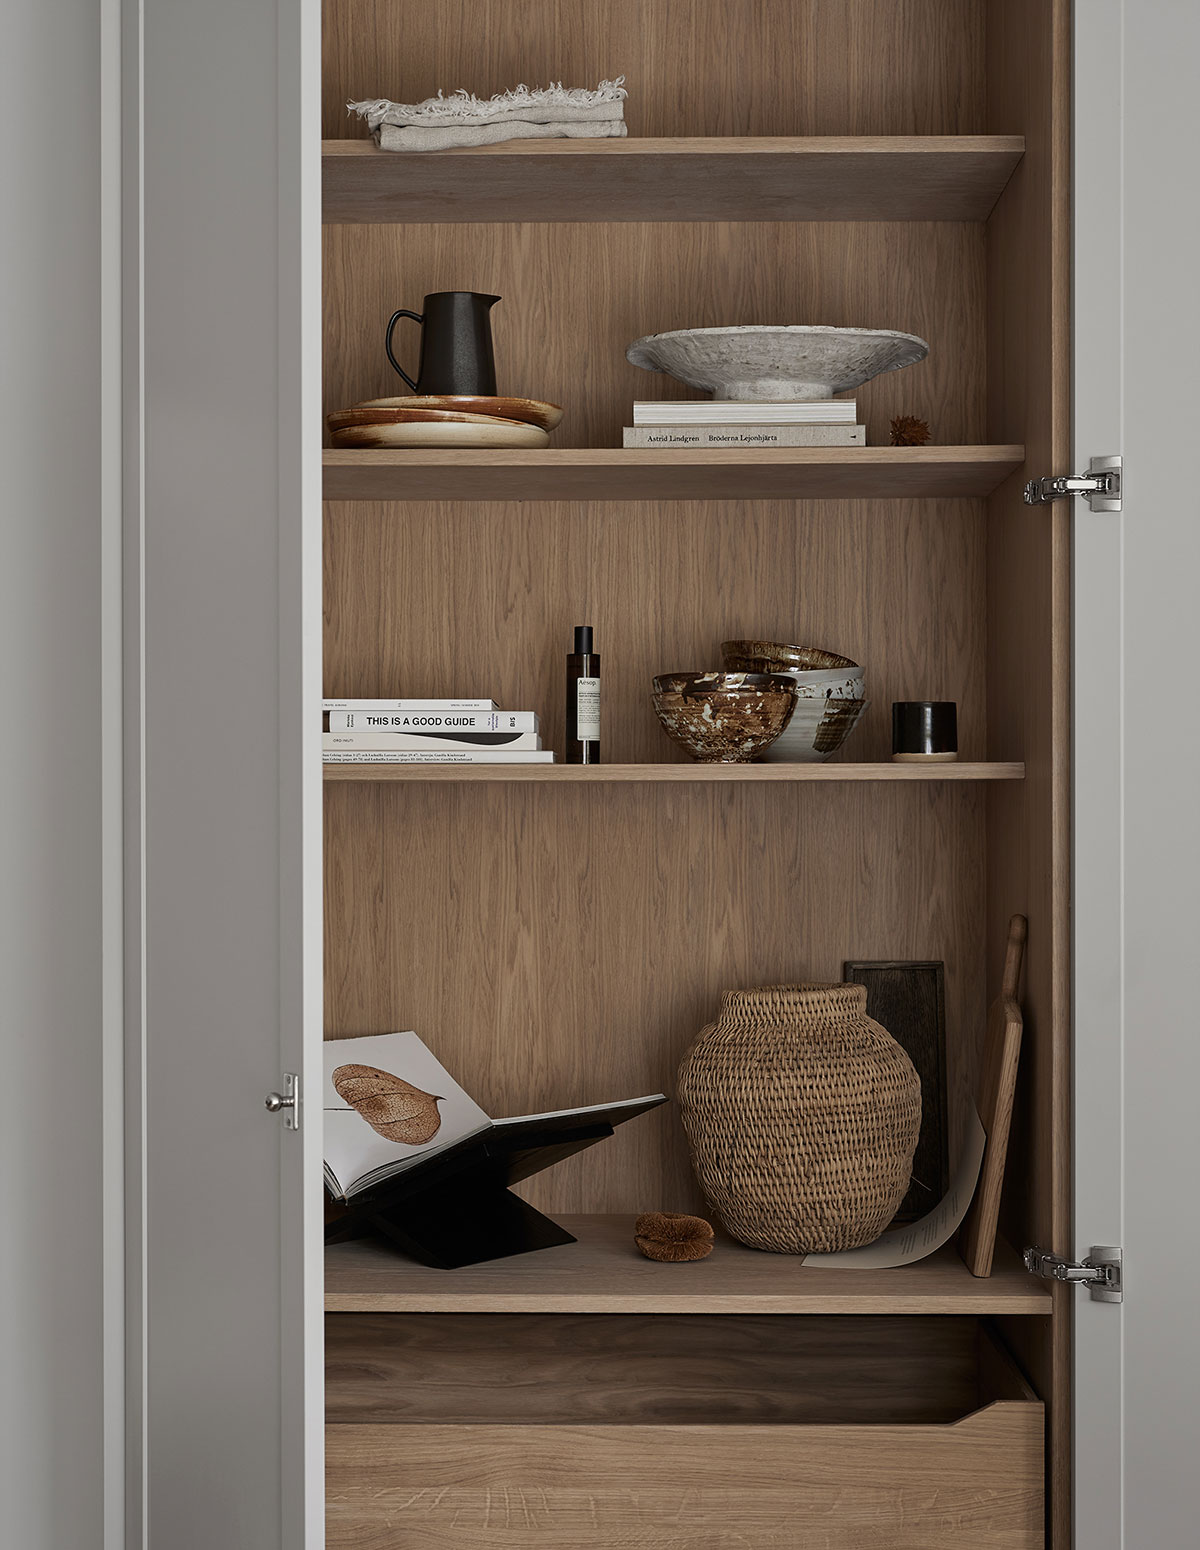 Kitchen cabinets in solid oak, inspiration